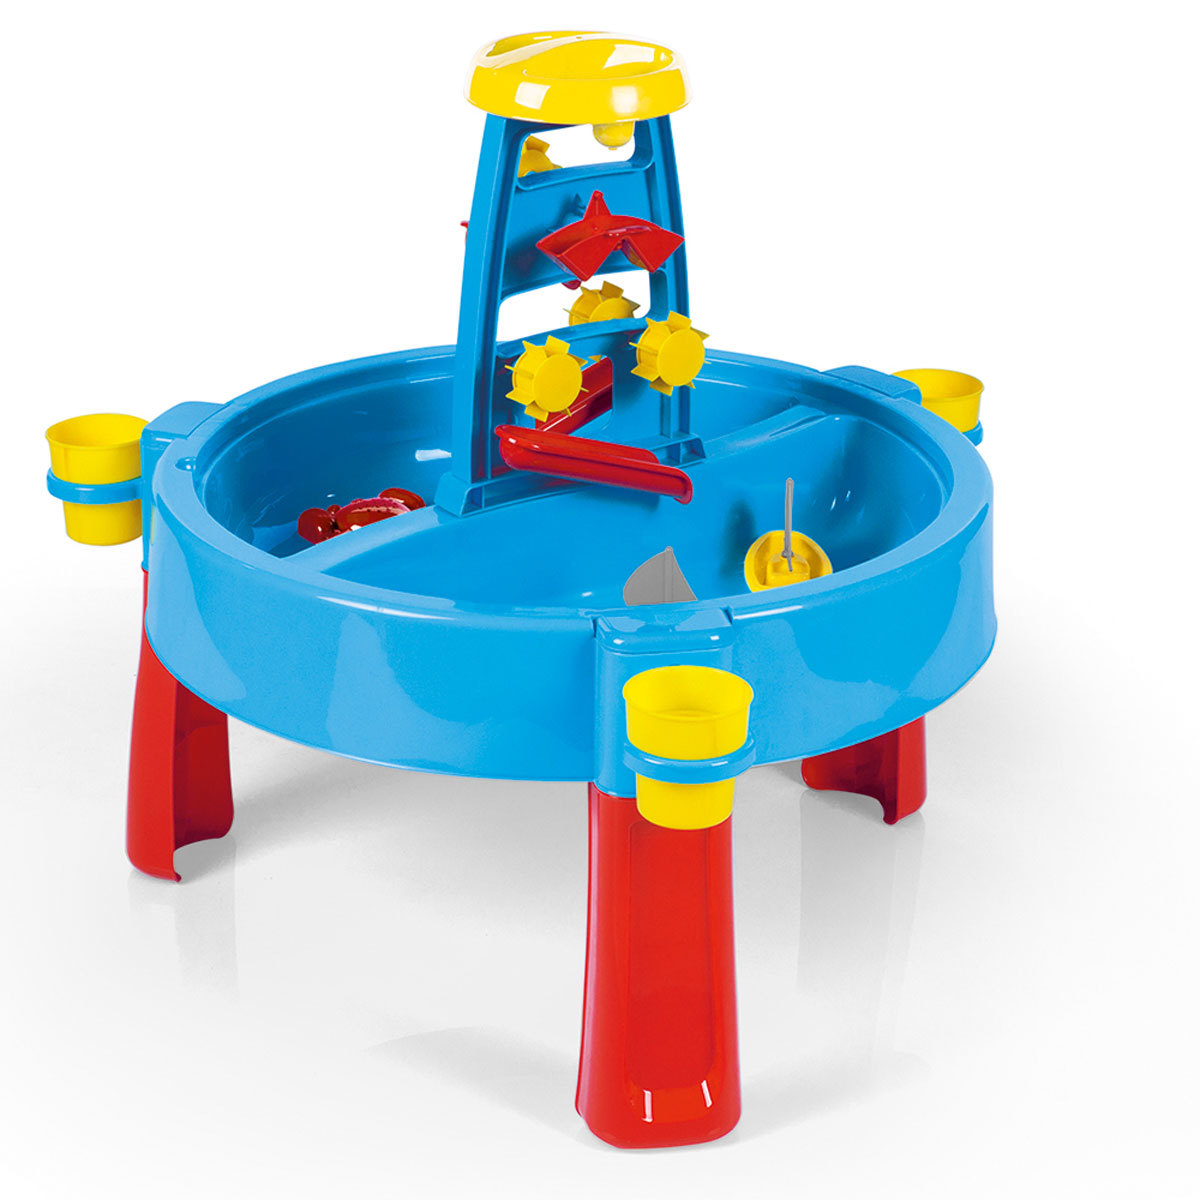 Dolu 3-in-1 Activity, Sand and Water Table With Lid